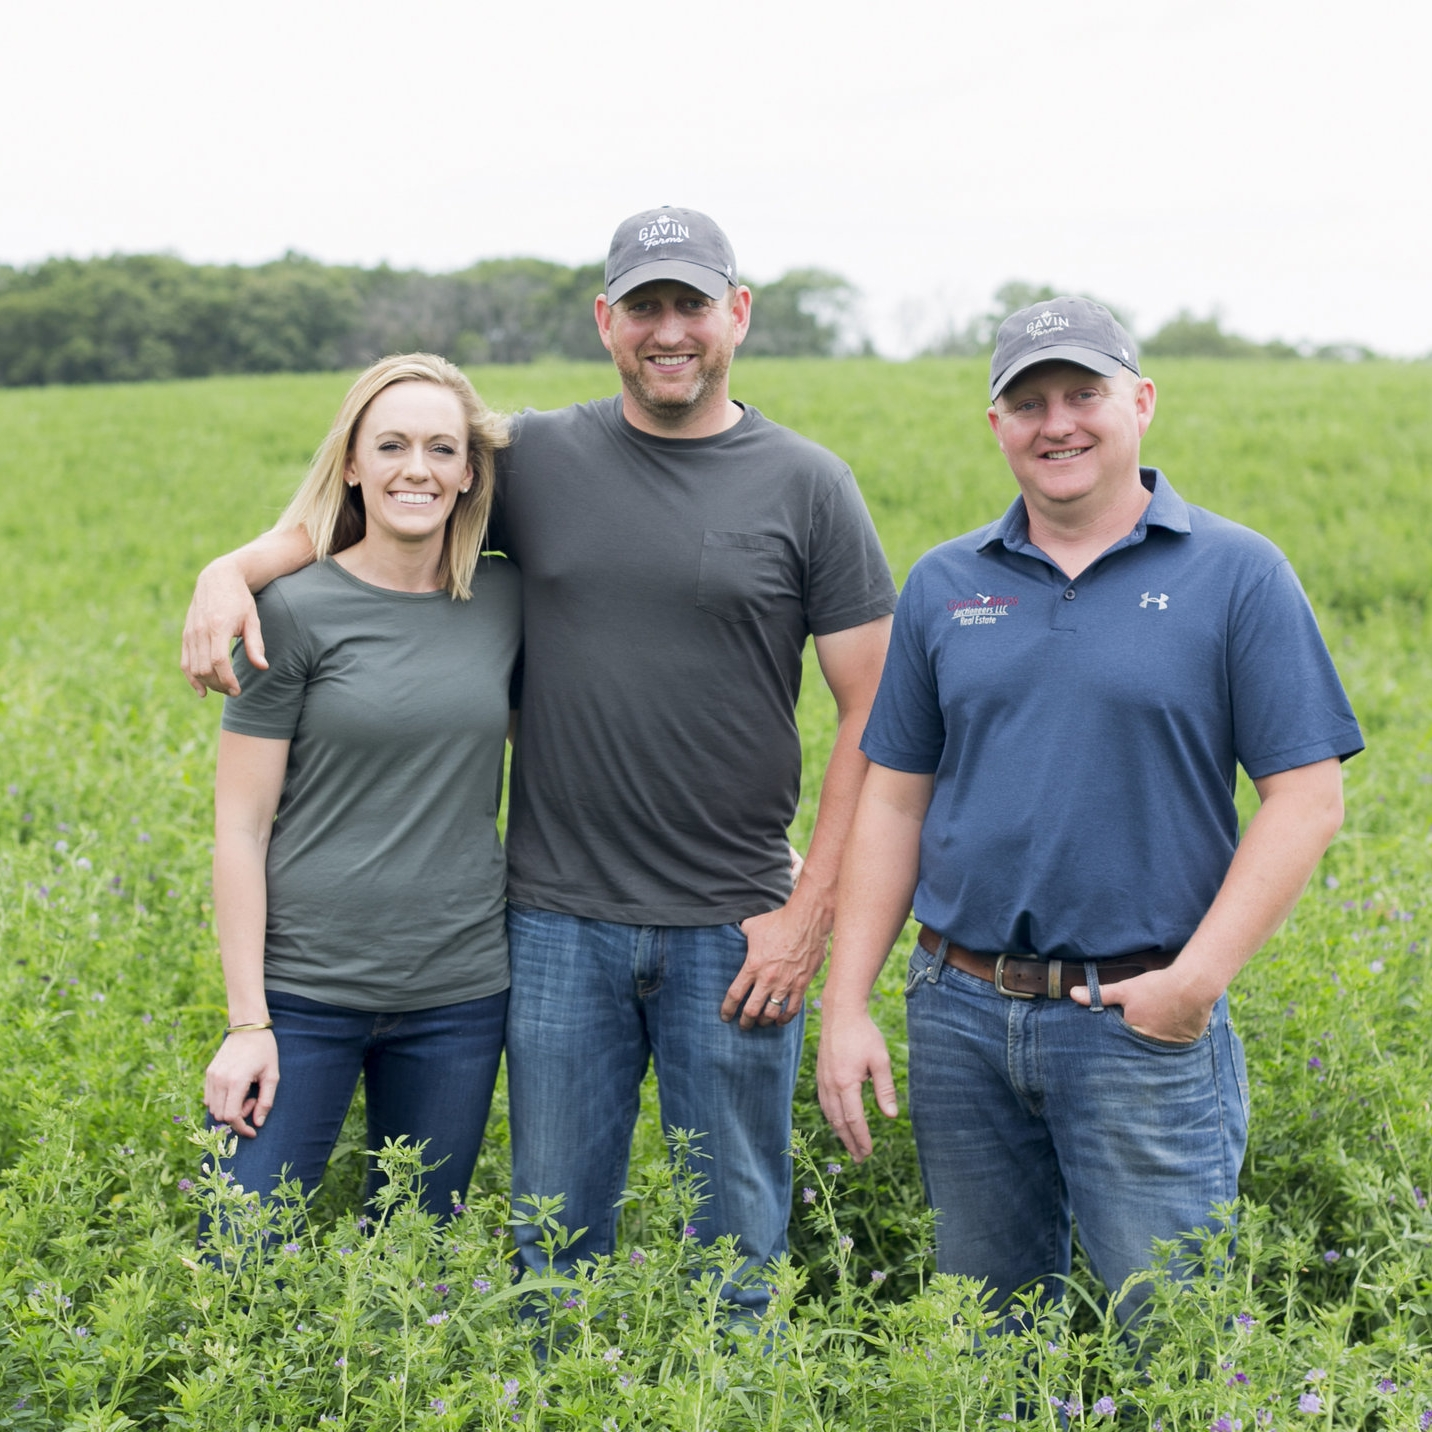 ABOUT GAVIN FARMS - Want to know more about the farmers? Click below to learn about who we are and what Gavin Farms is all about.